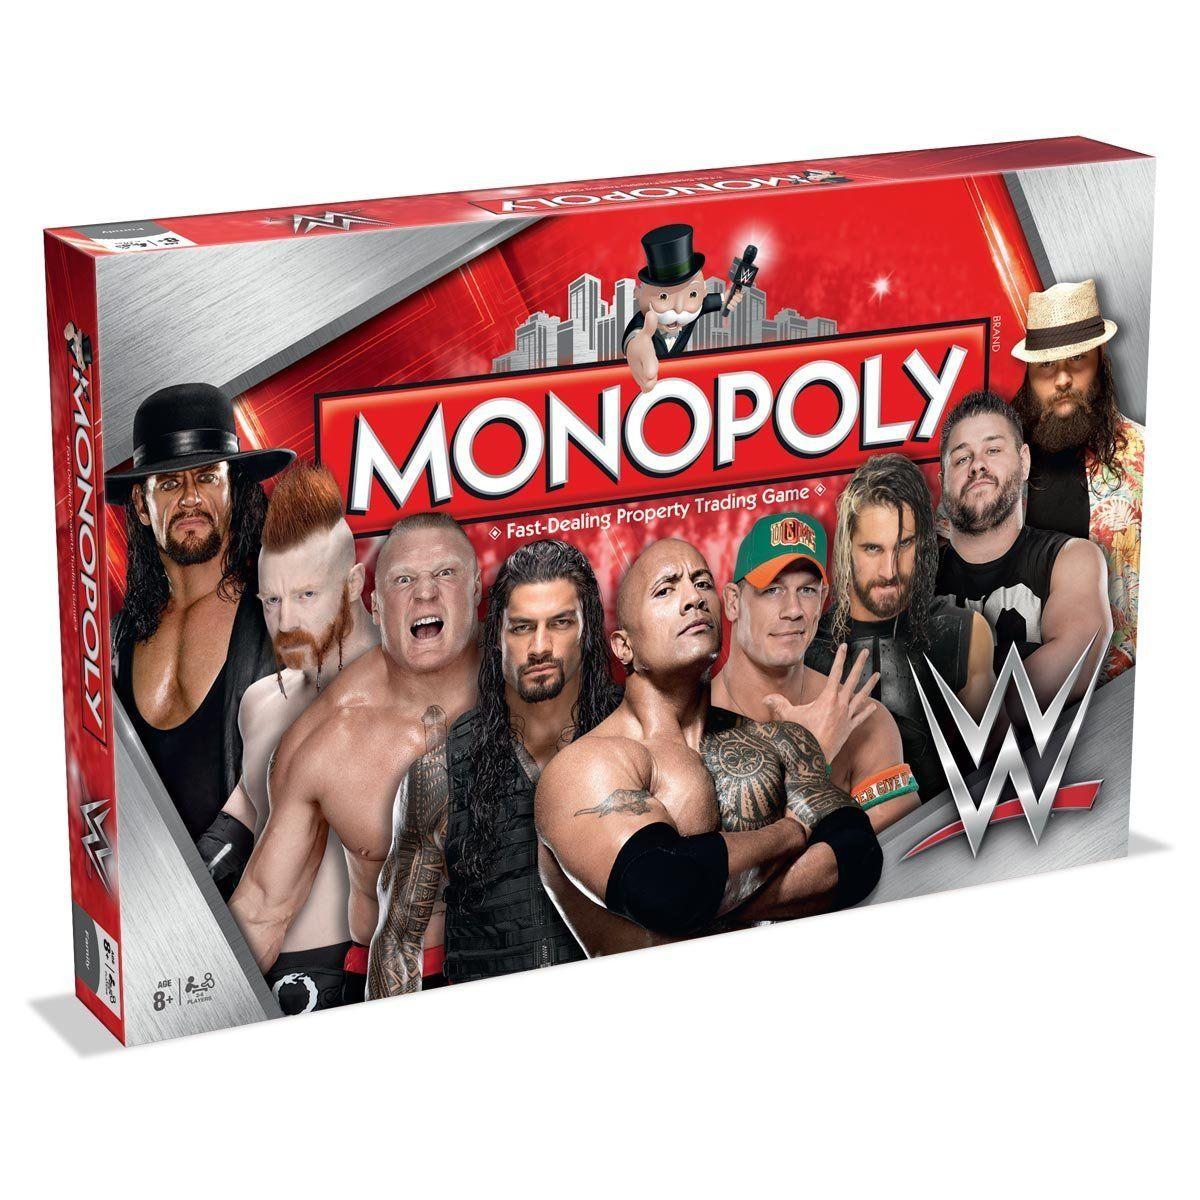 Amazon.com: WWE Edition Monopoly - Winning Moves: Toys & Games